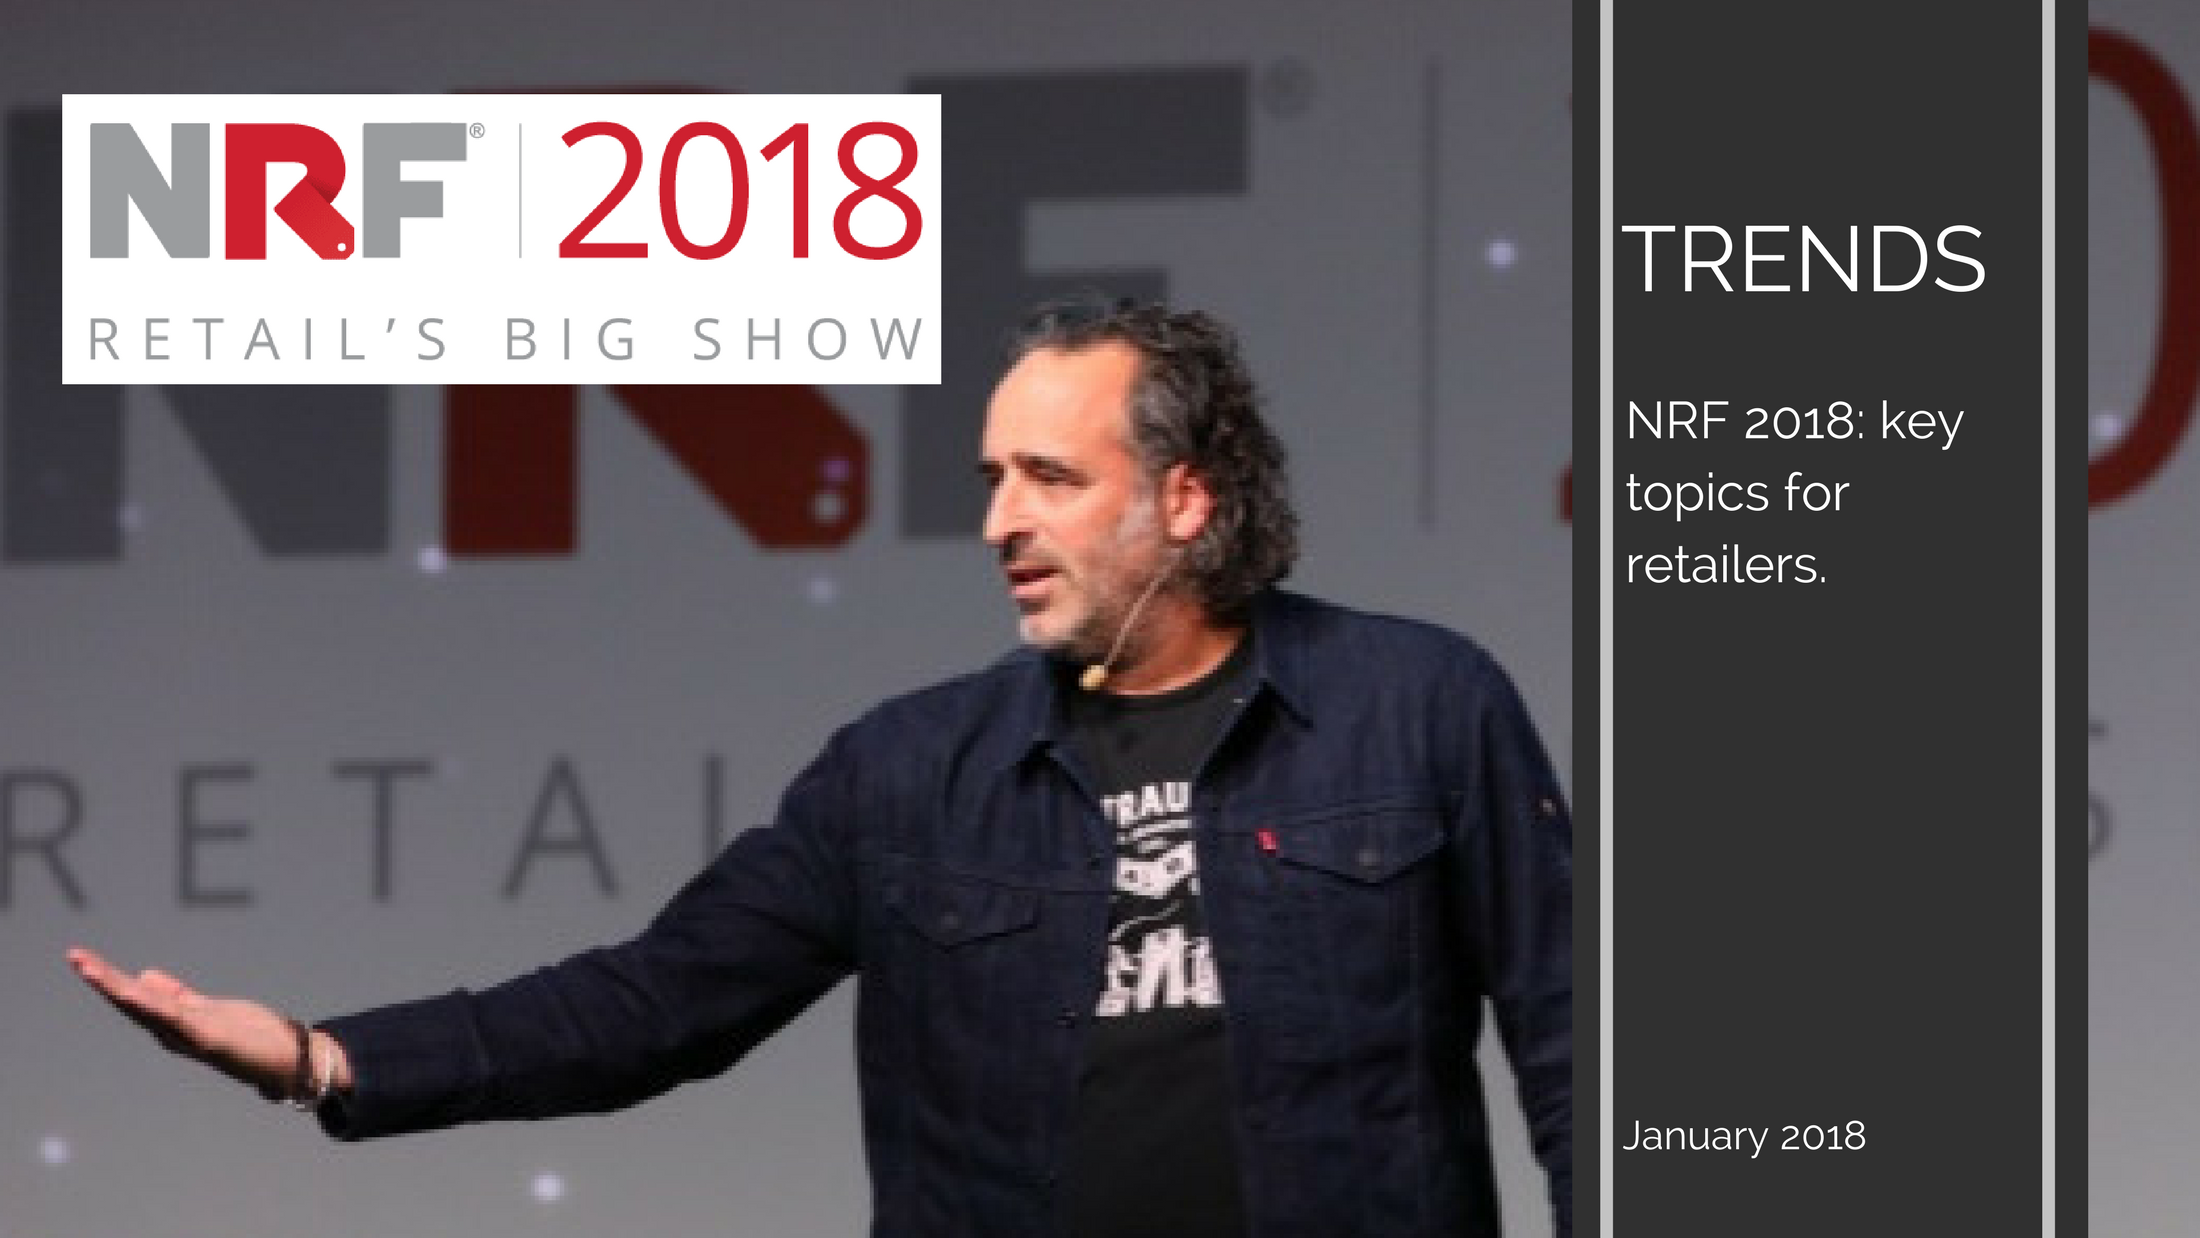 Trends News 26 - NRF 2018: key topics for retailers